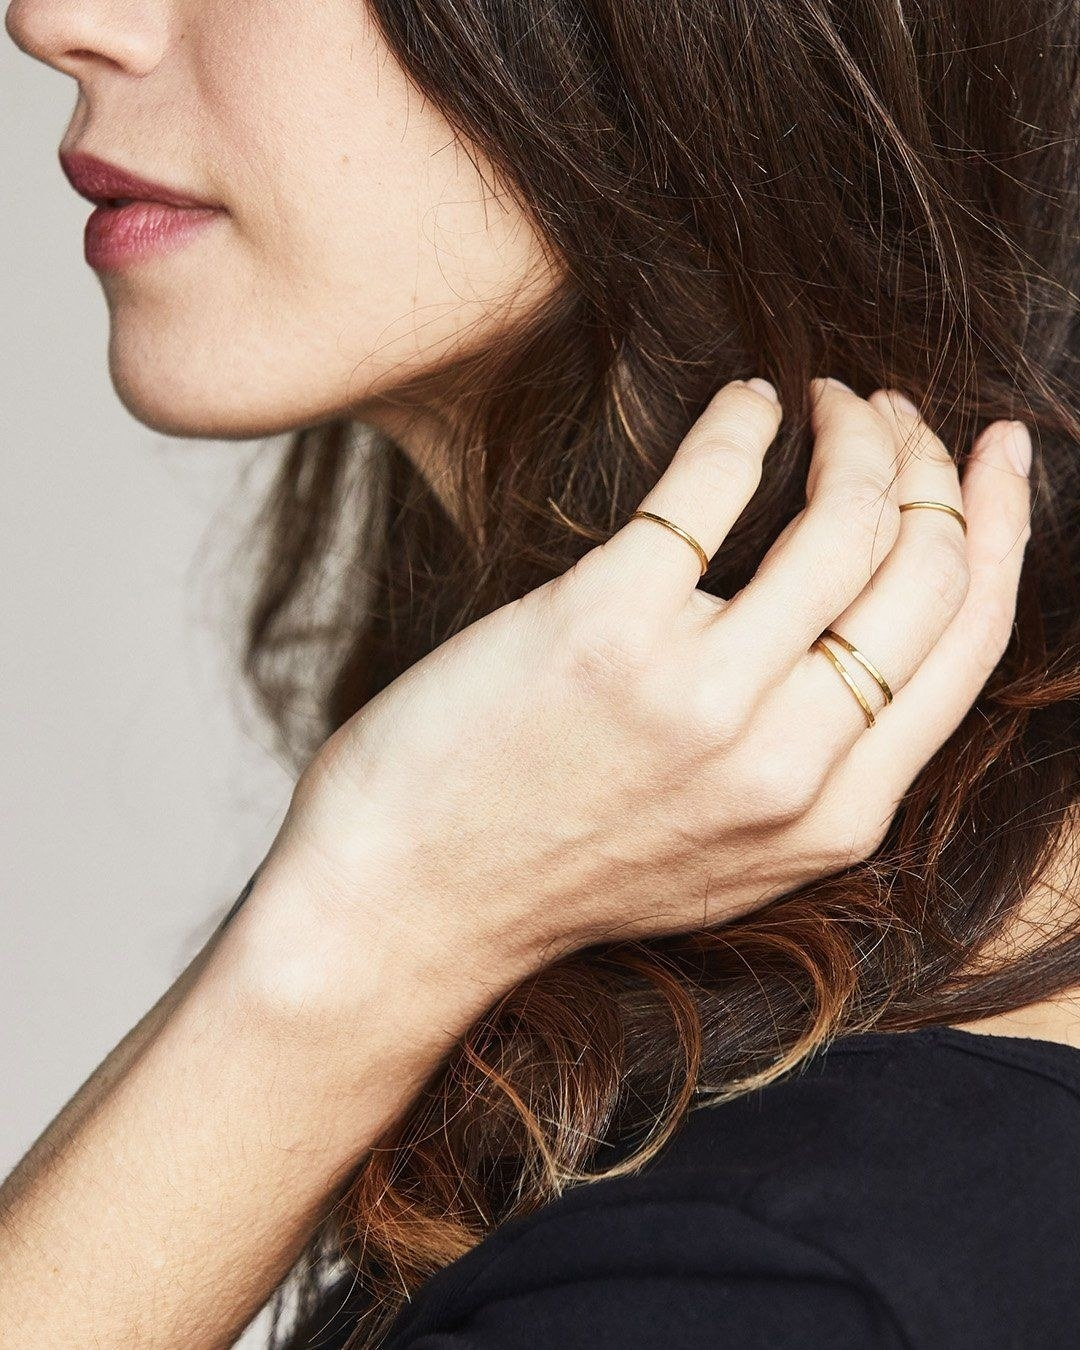 Model wearing several of the thin golden rings